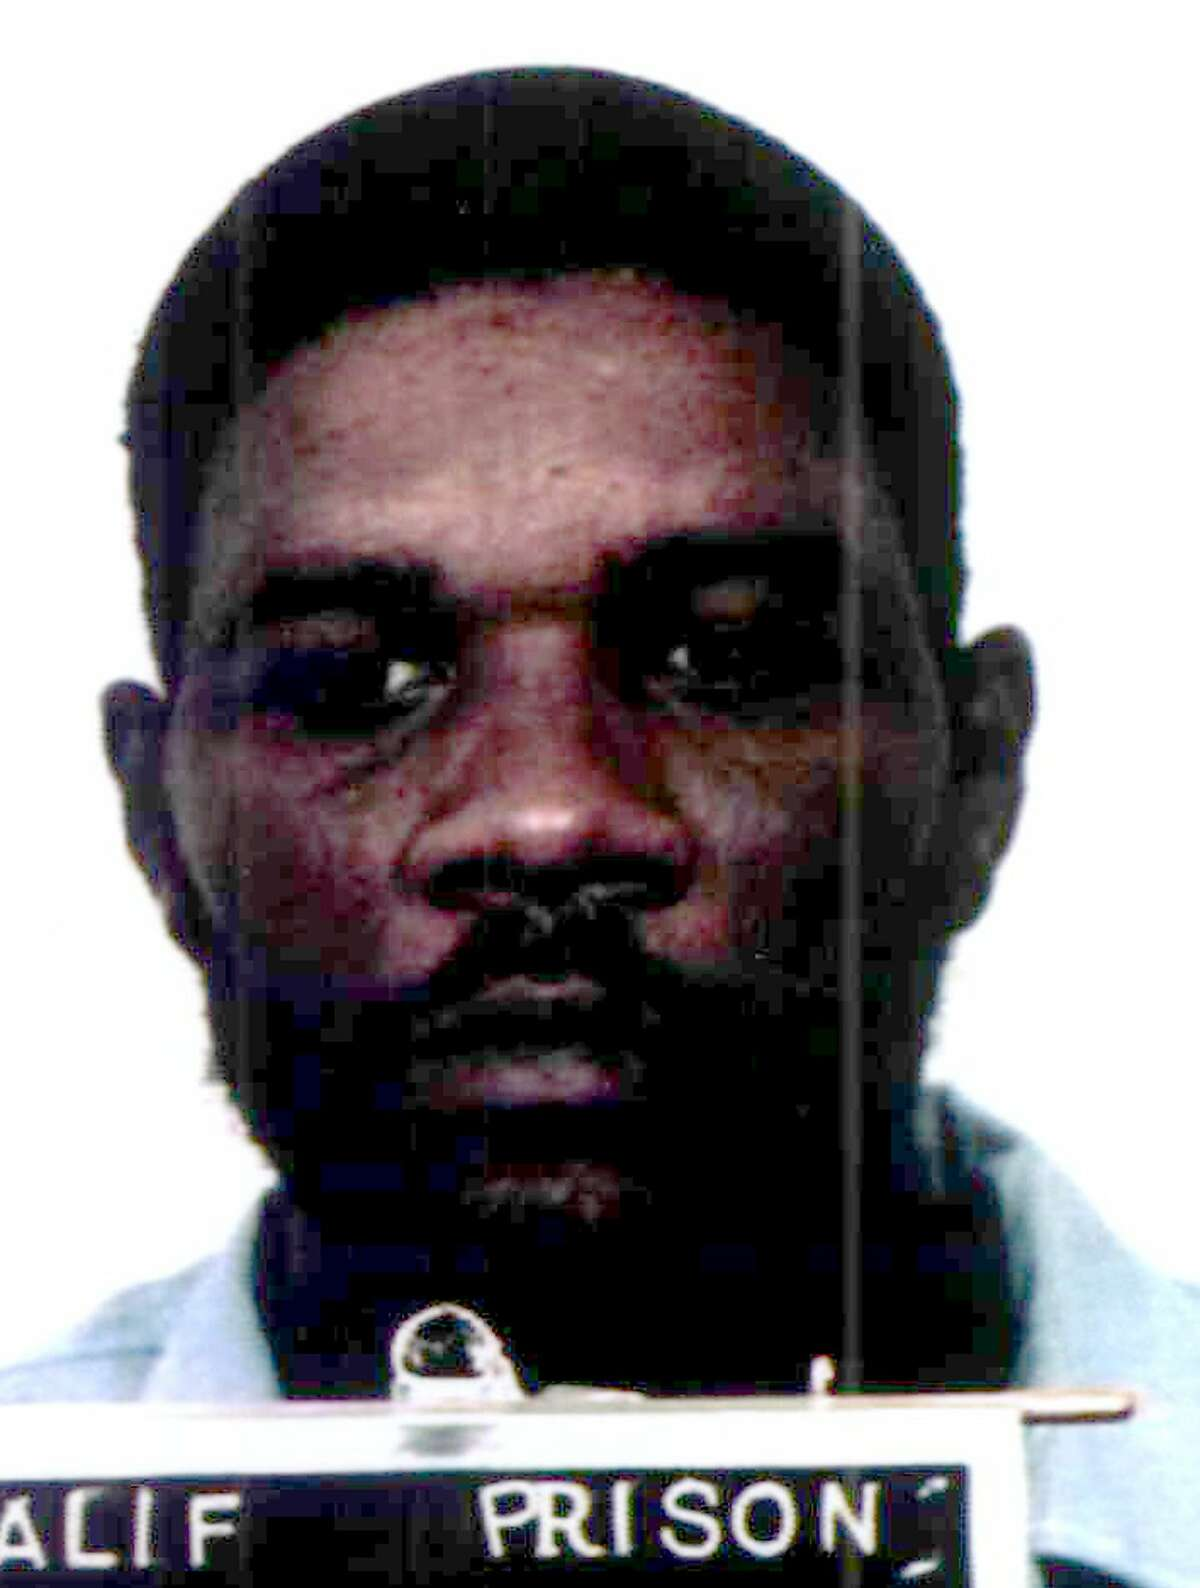 This is an undated California Department of Corrections handout photo of Kevin Cooper. Still on his political honeymoon, Gov. Arnold Schwarzenegger is facing his first plea for clemency from Cooper, who is set to die by injection Feb. 10, 2004 for hacking four people to death. (AP Photo/California Department of Corrections)